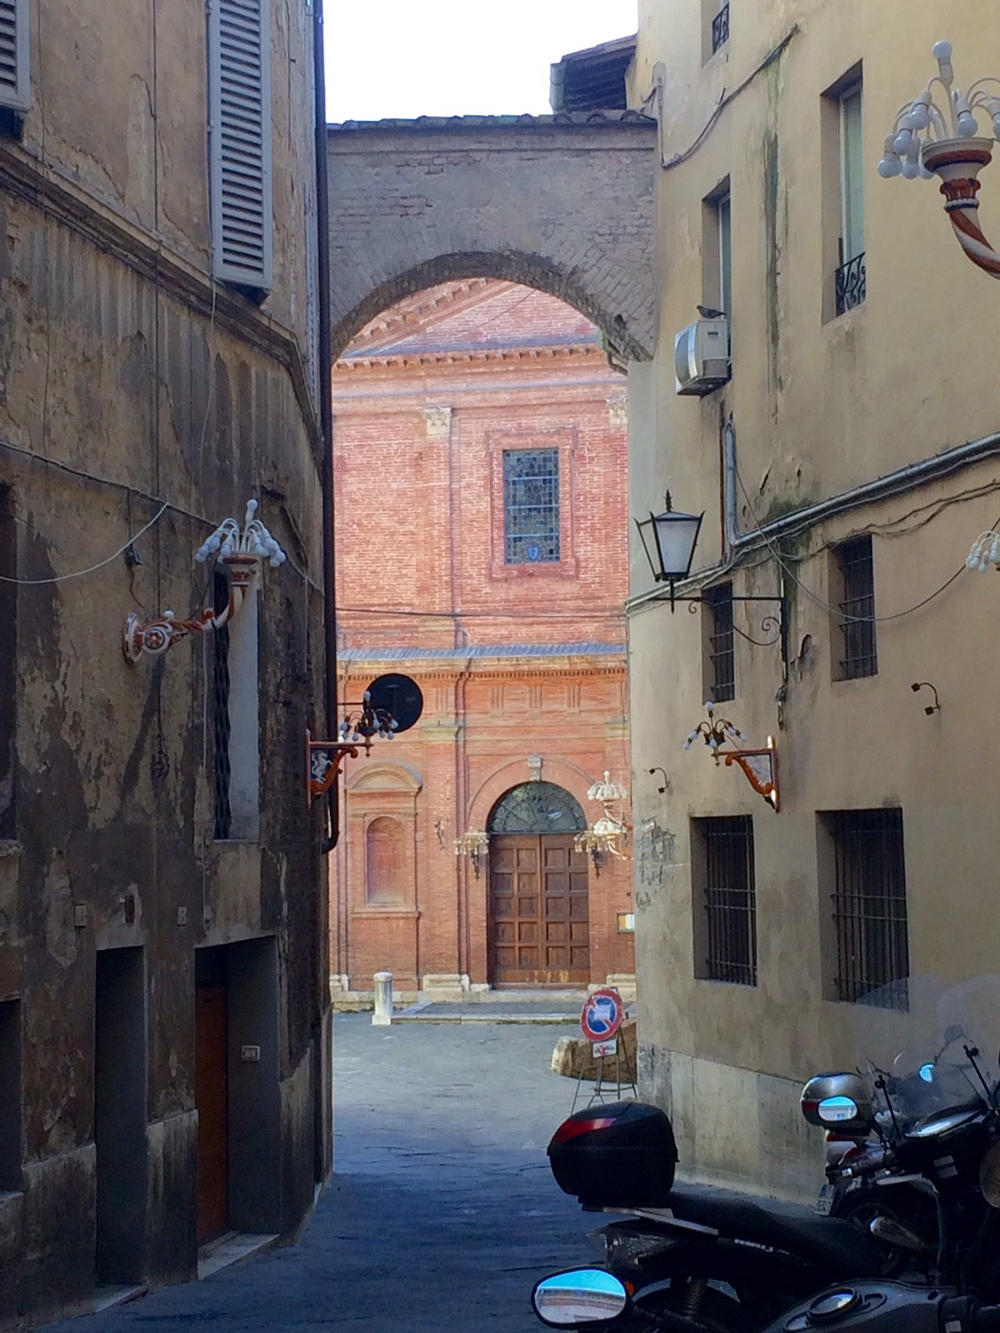 Italian charm oozes from the streets.